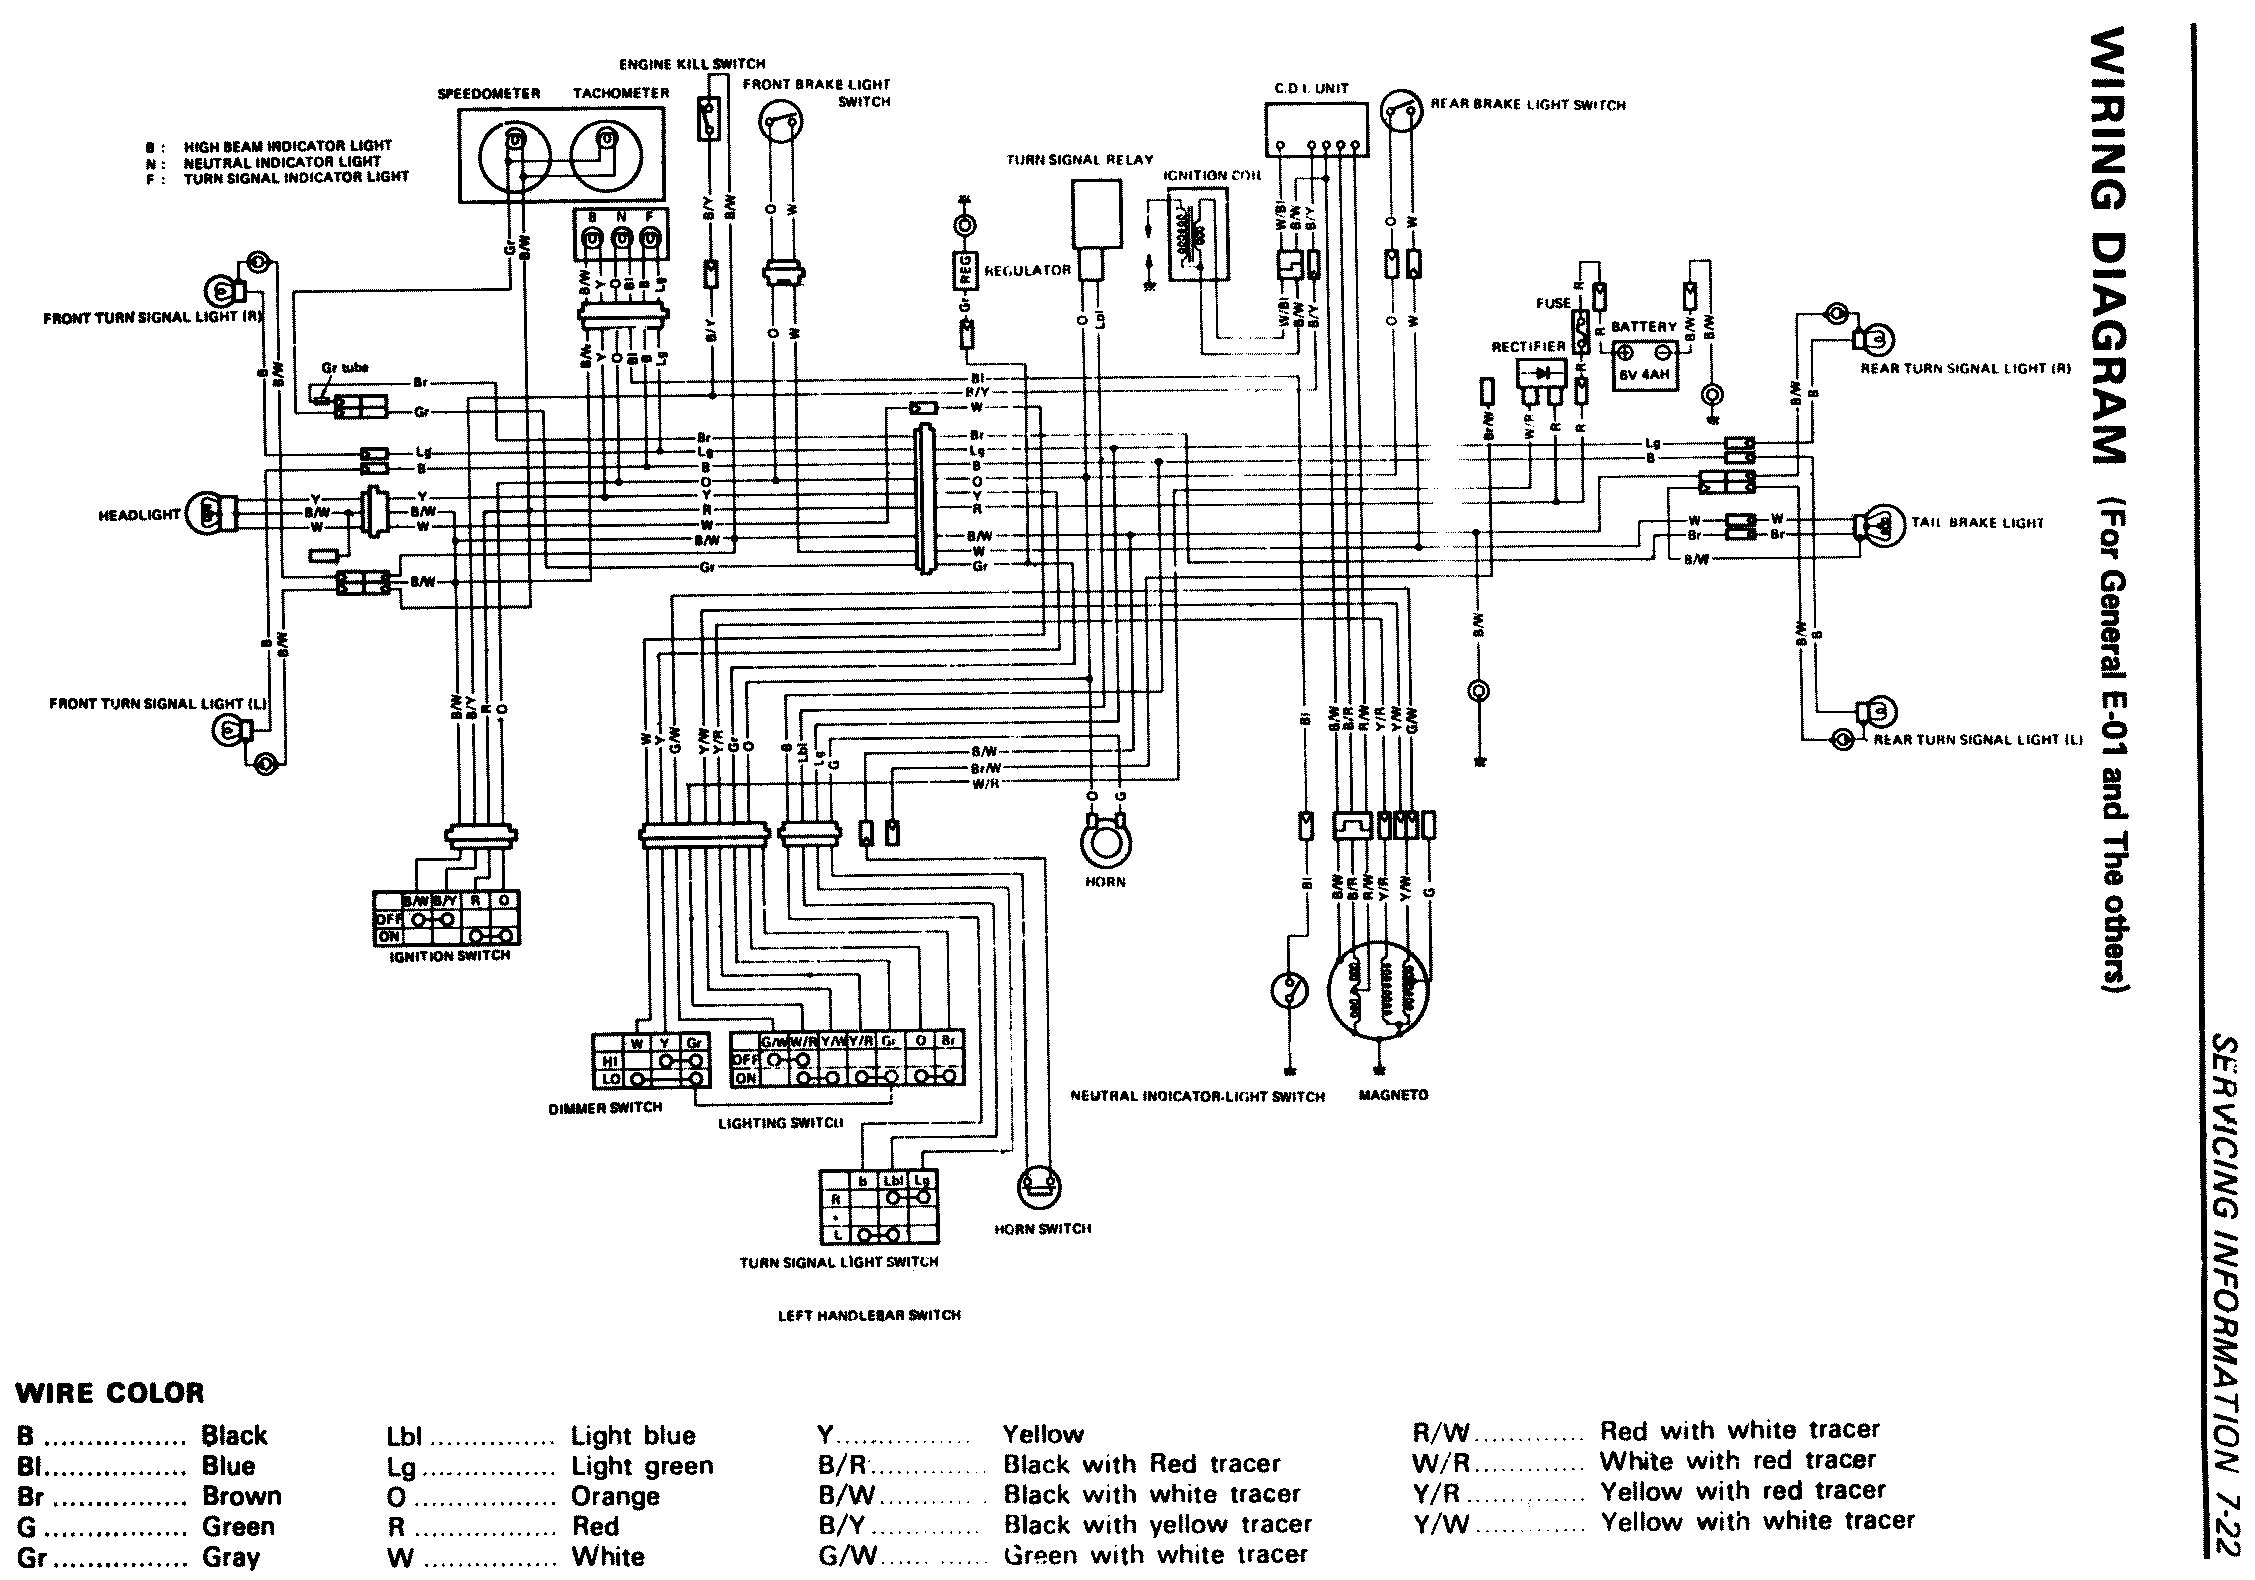 ltz 250 wiring diagram best of wiring diagram datasheet u2022 rh darrentoh  co suzuki ltz 250